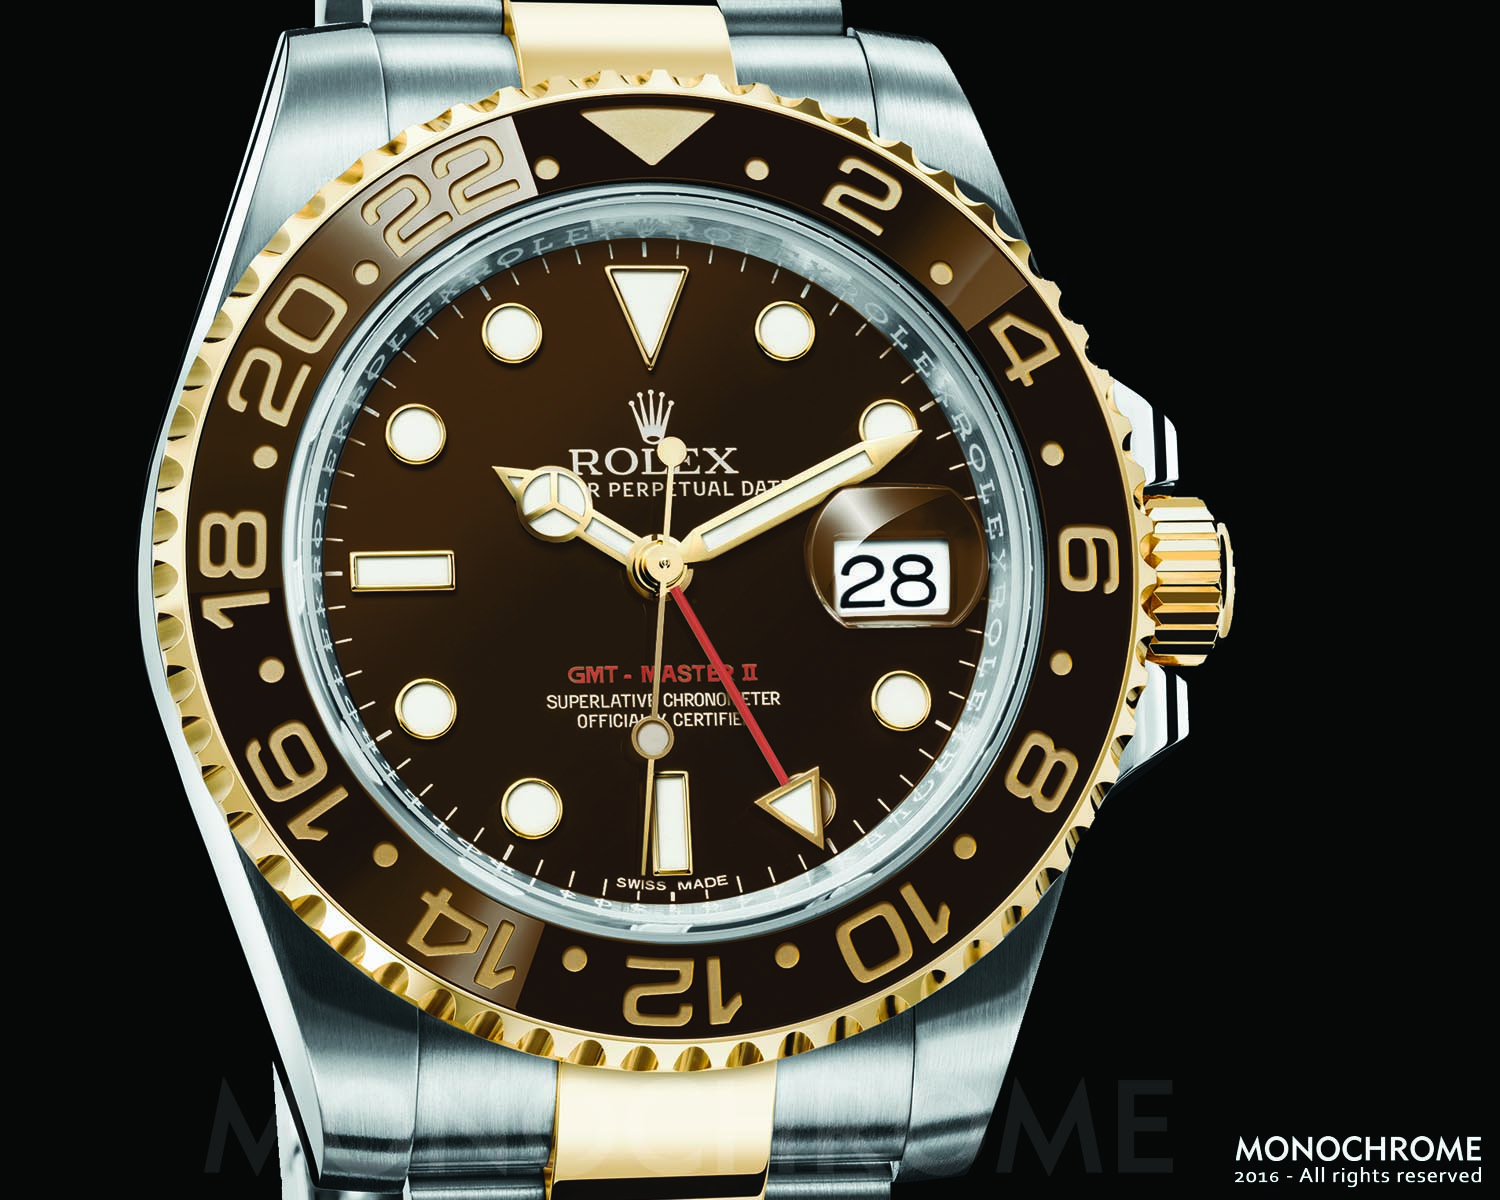 Rolex GMT-Master II Two Tone Root Beer - Rolex Baselworld 2016 - Rolex Predictions 2016 - Monochrome